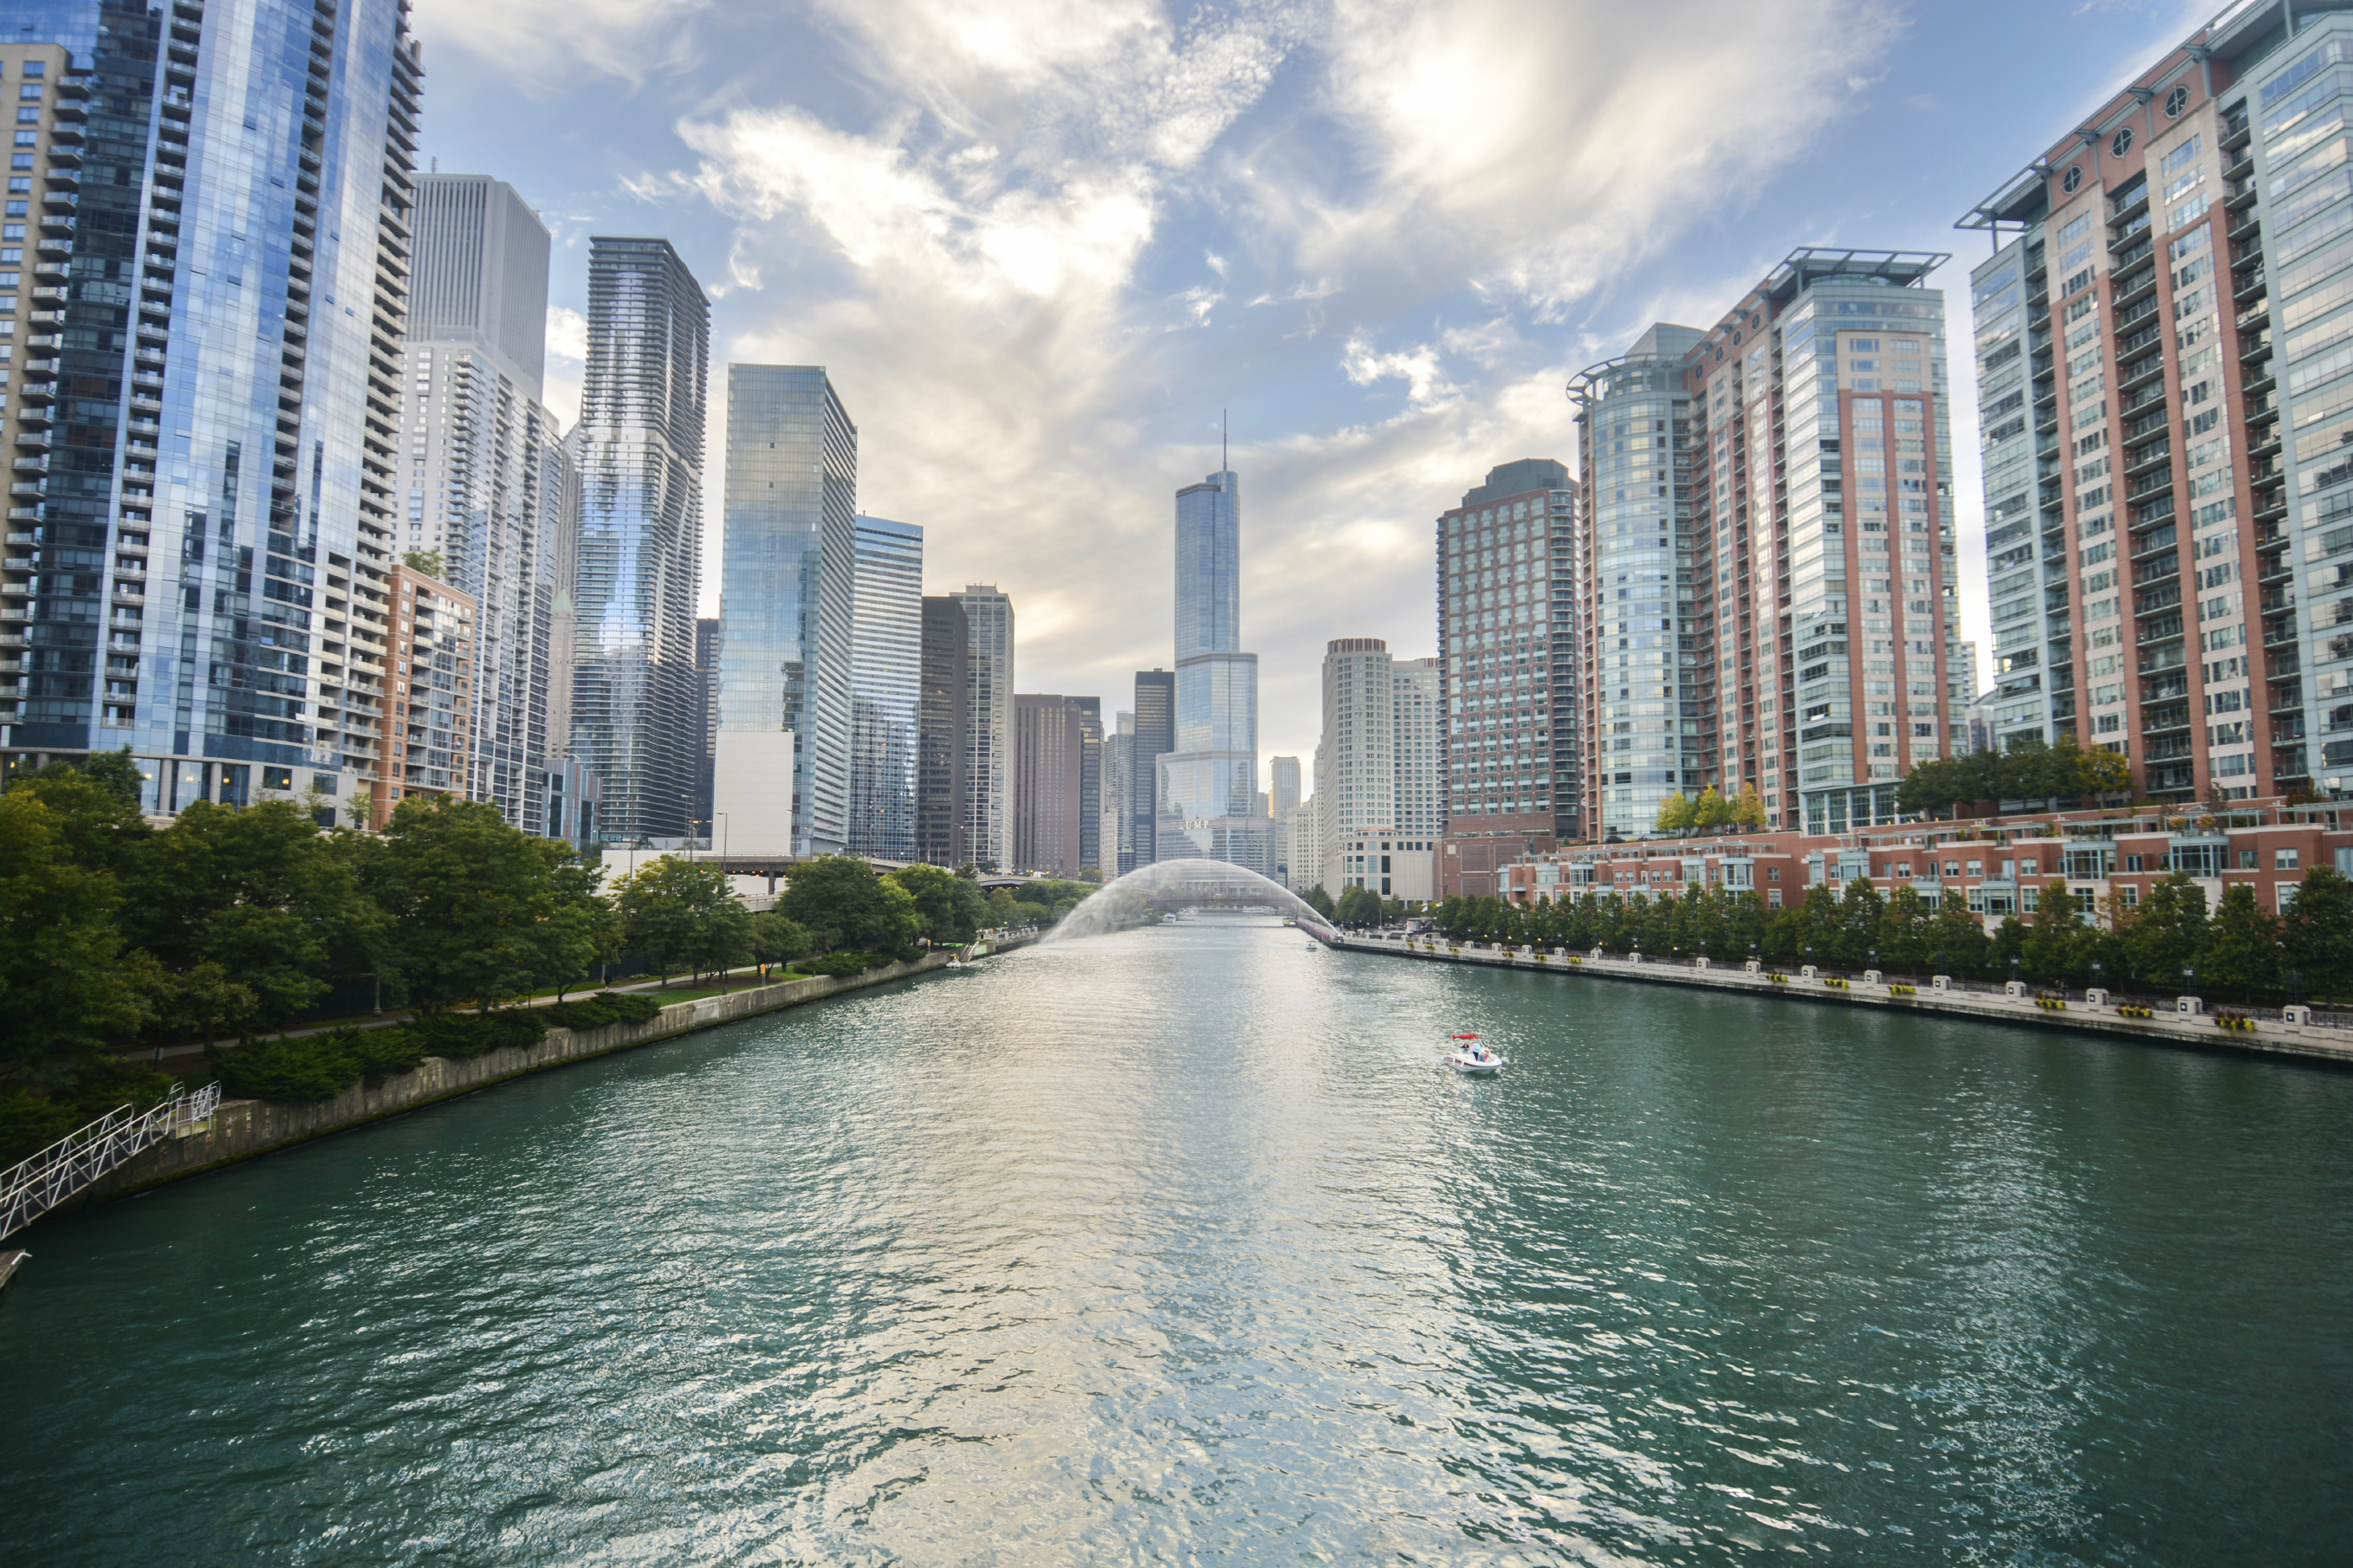 1-Day Chicago City Landmarks Tour